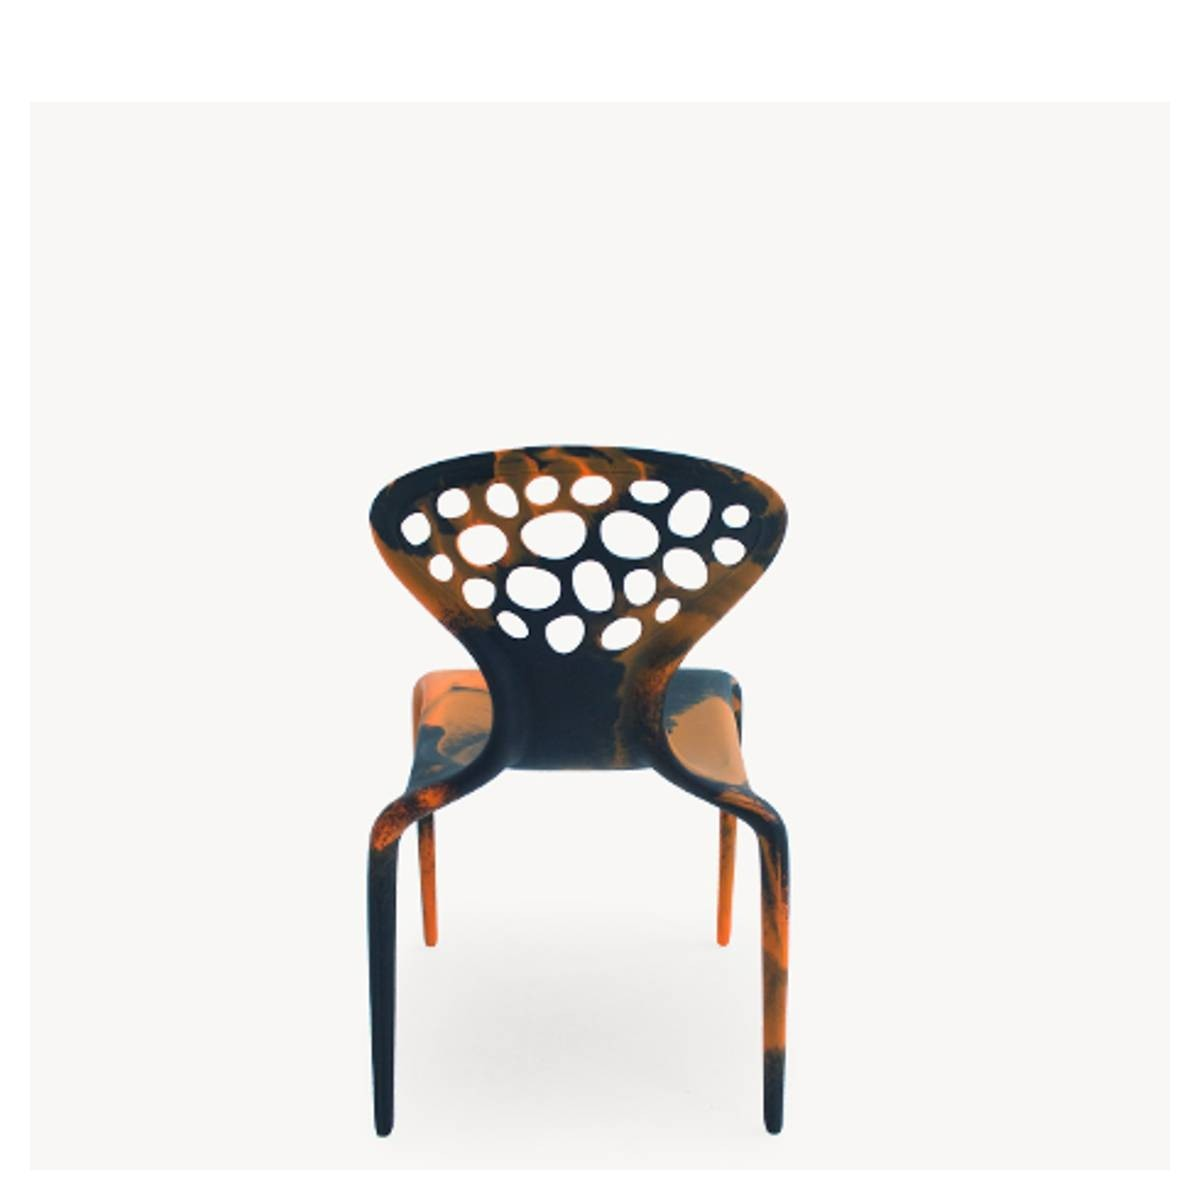 Supernatural Dining Chair with Perforated Back, Black/Fluo Green Black/Orange